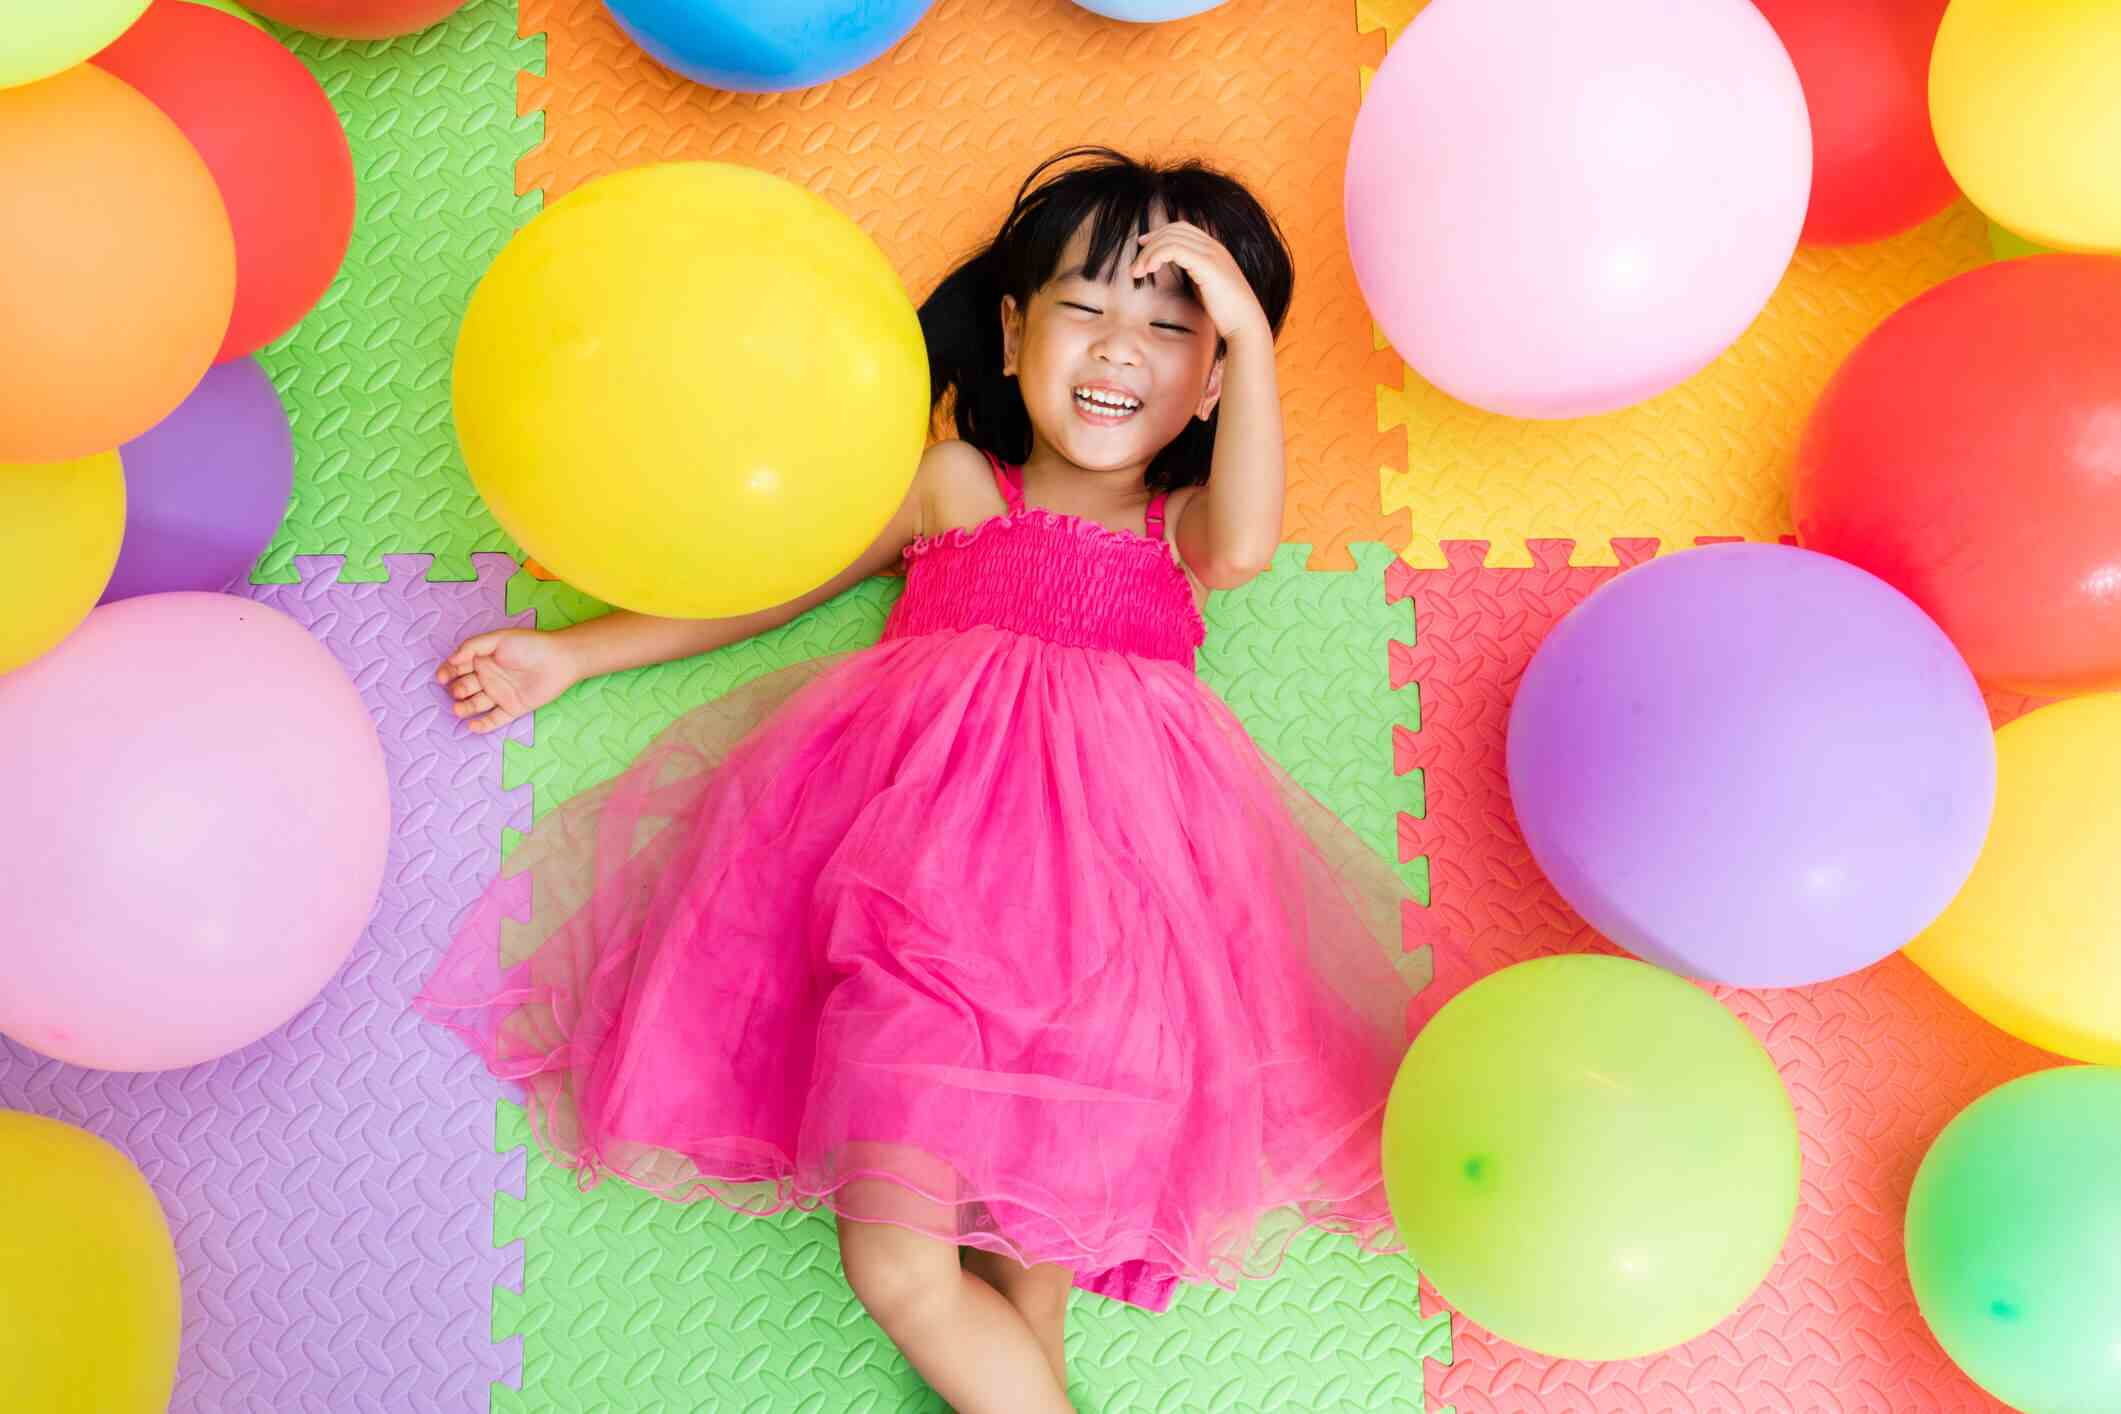 Girl surrounded by balloons.